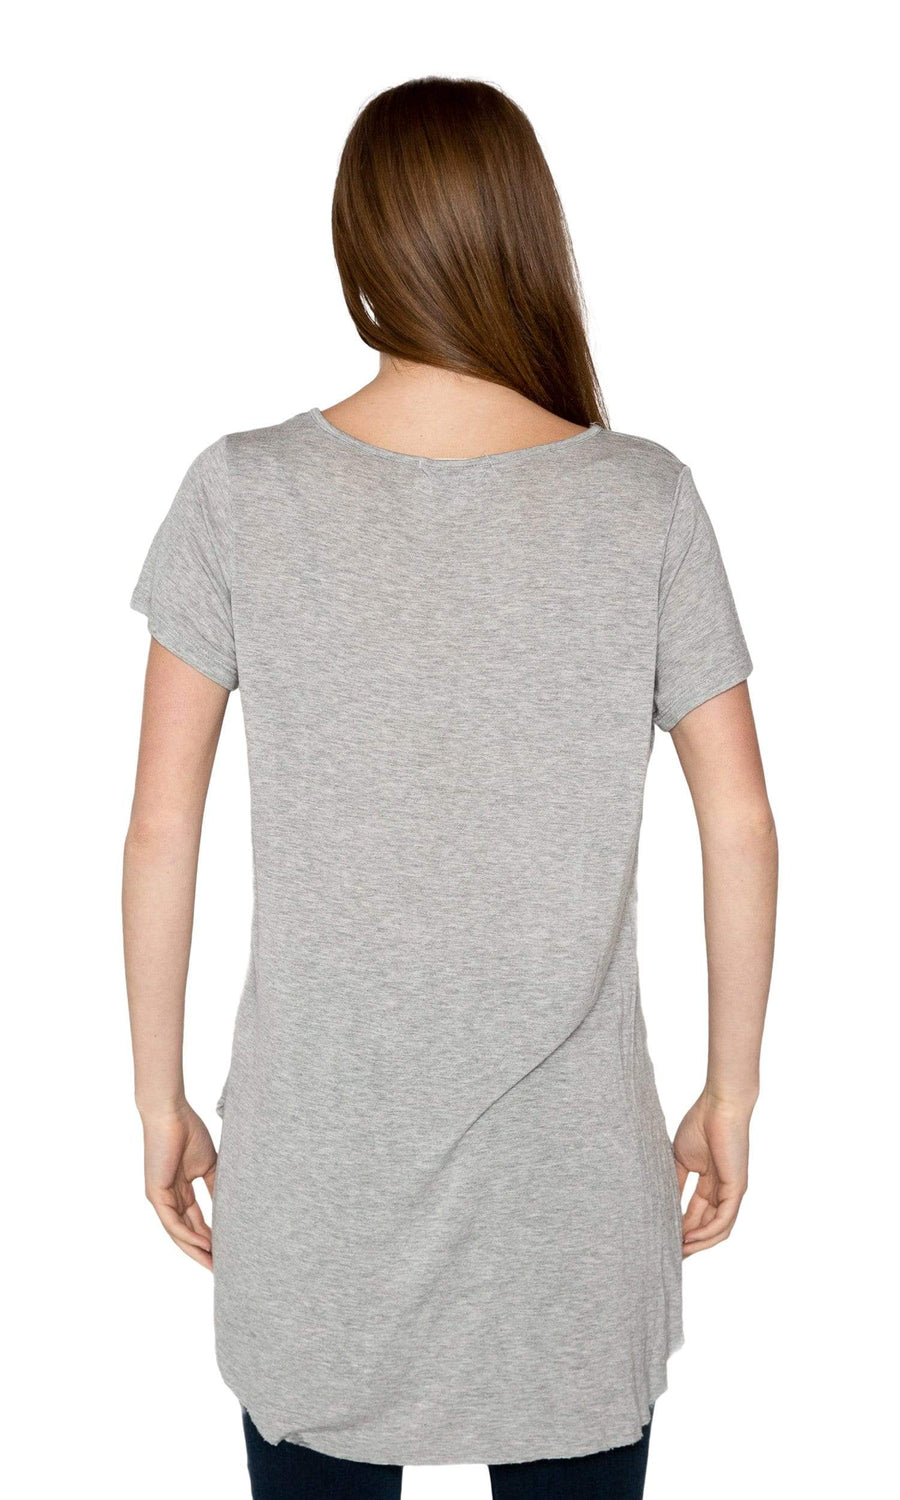 Valln Scoop Tail Tee - Breathe